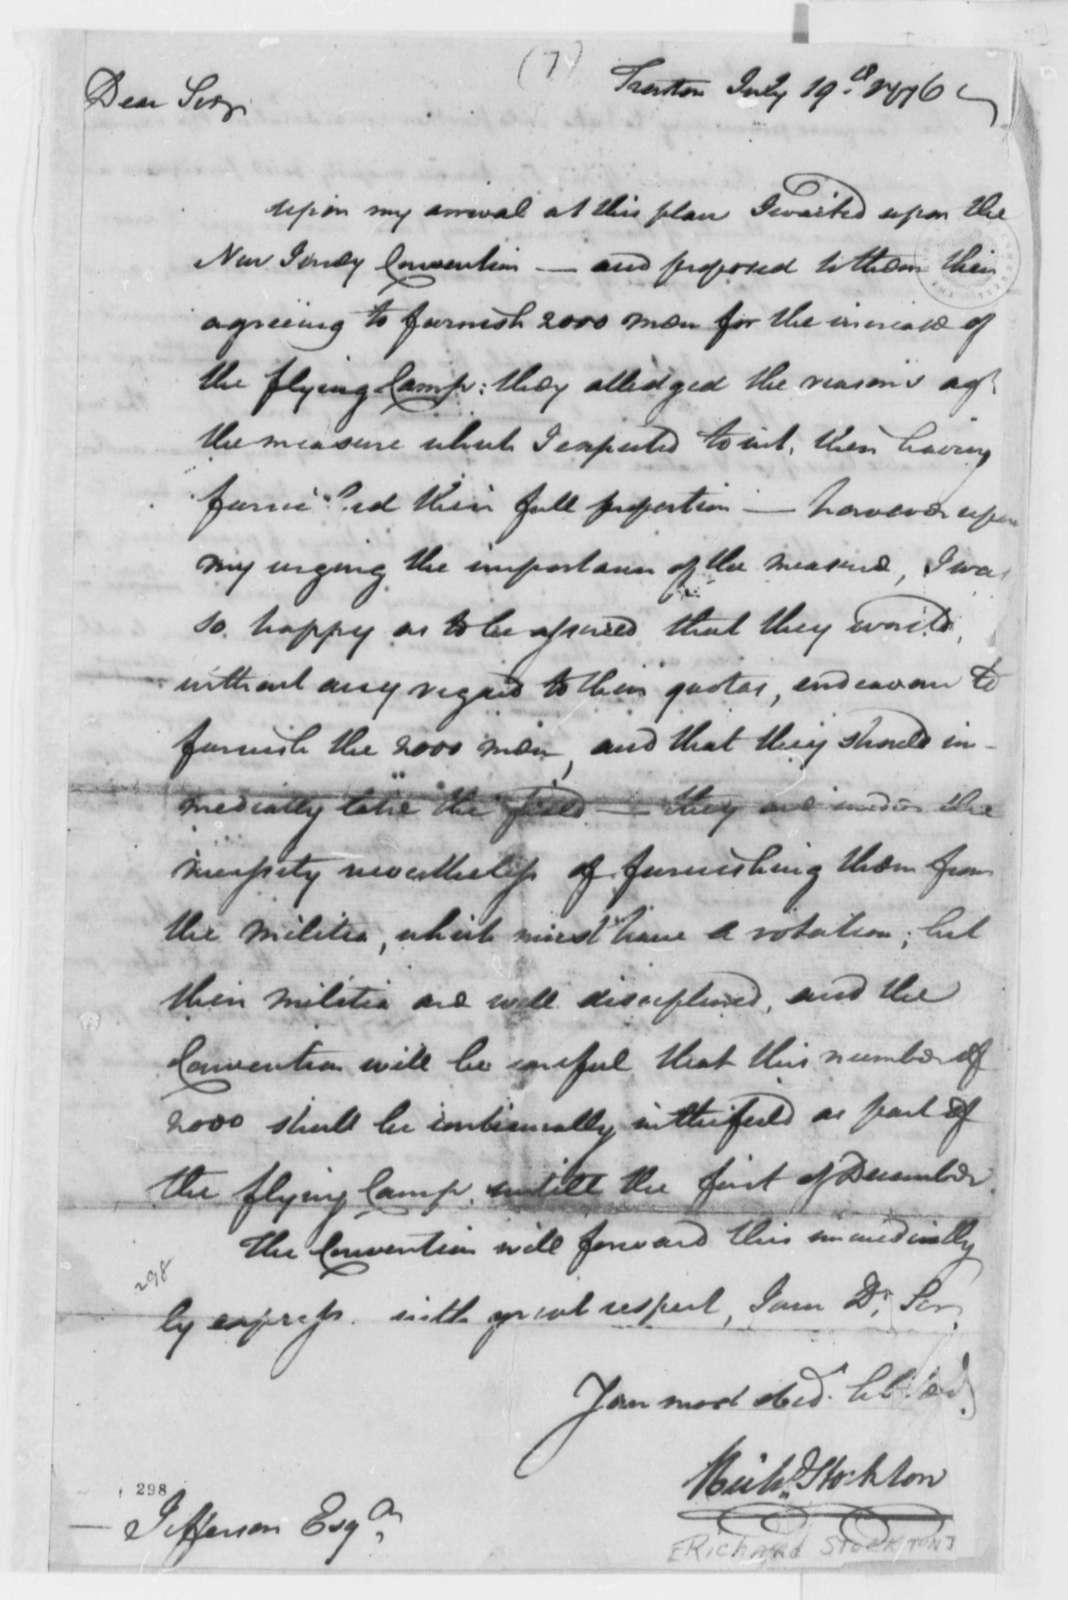 """Richard Stockton to Thomas Jefferson, August 19, 1776, New Jersey Convention to Furnish Troops for """"Flying Camp"""""""